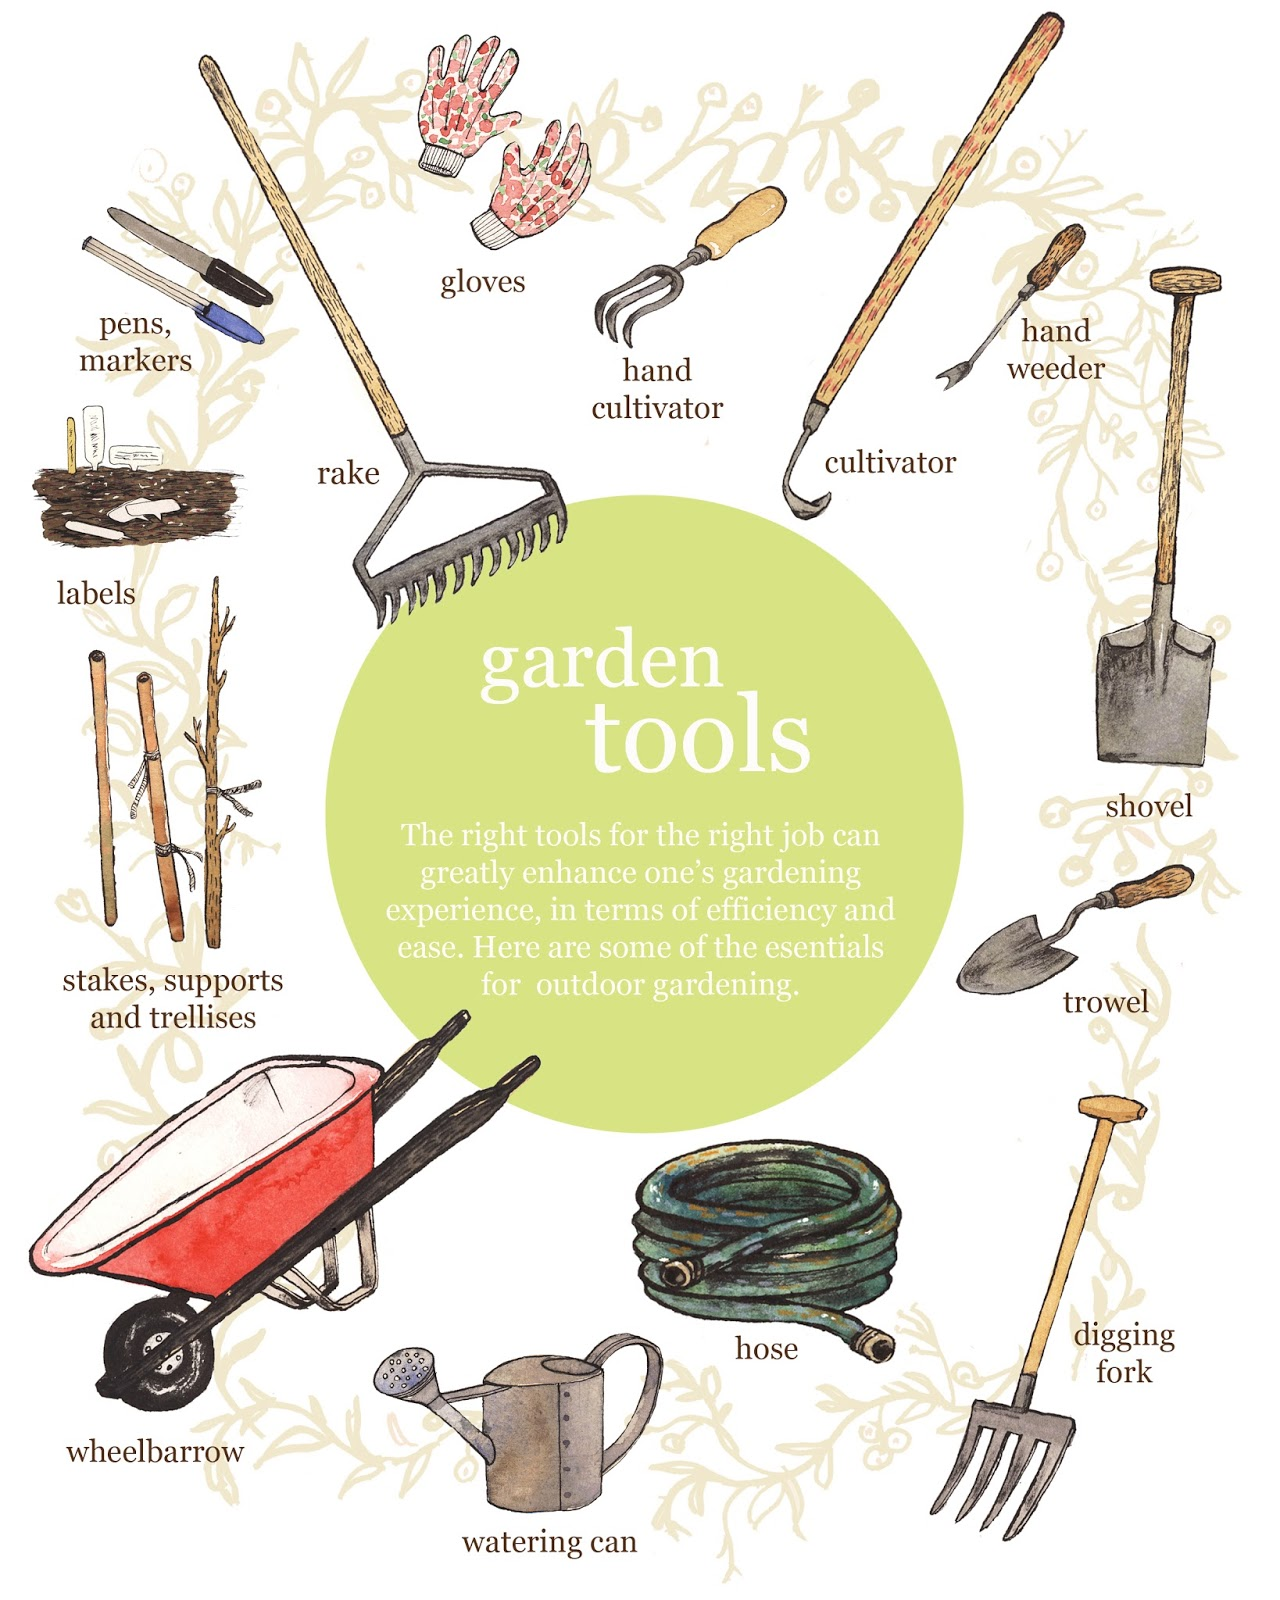 Robin clugston gardening tools and compost advice for Gardening tools list with pictures